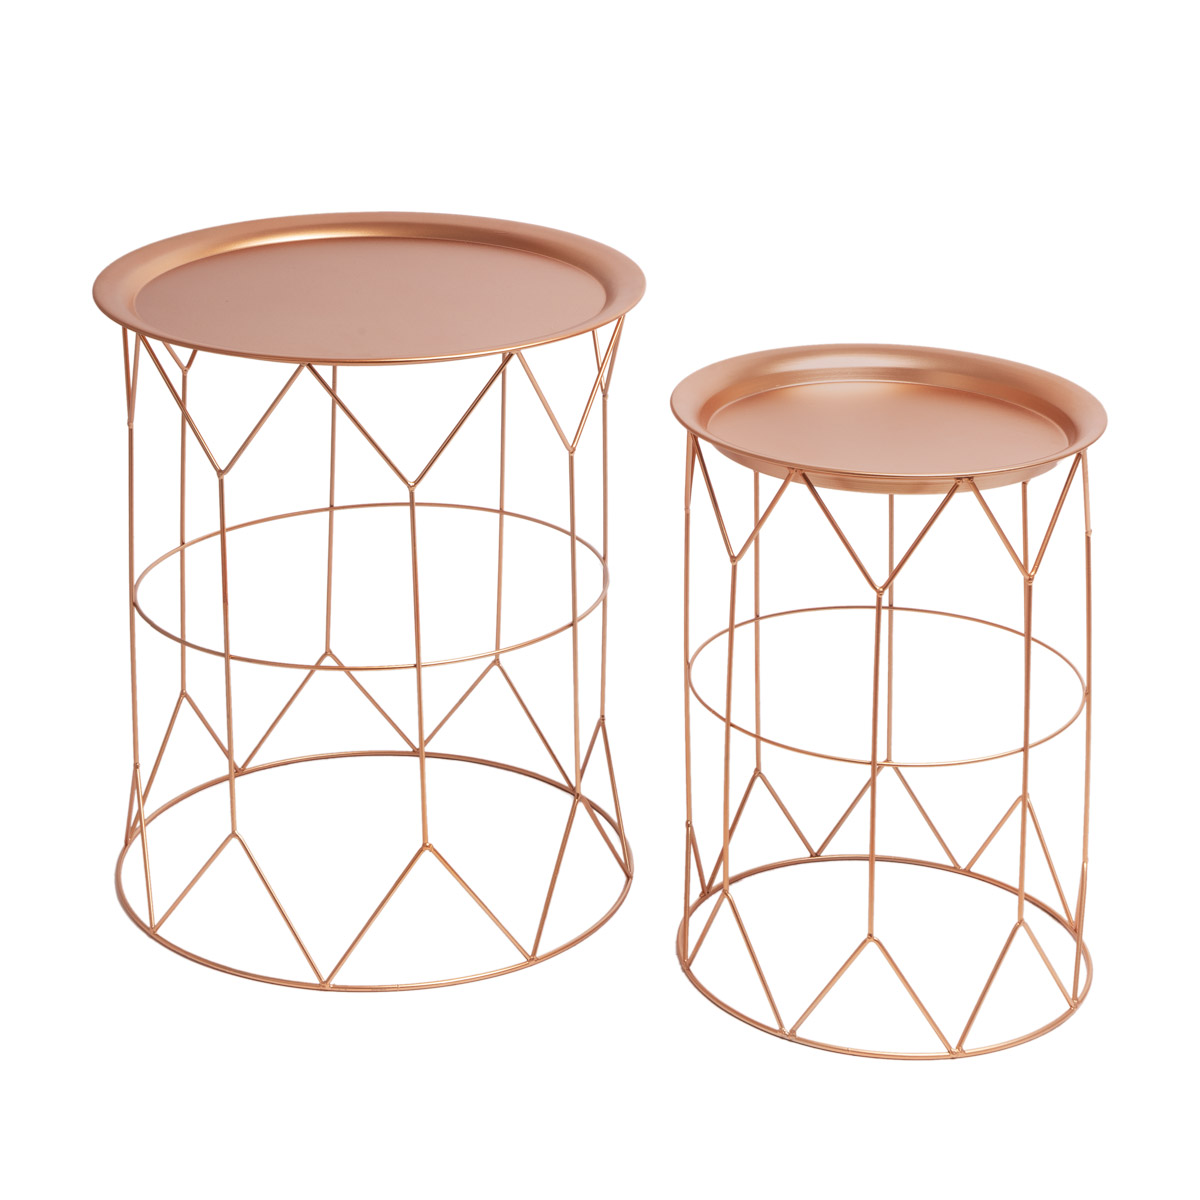 eptember 2 side table Metal Table Set Auxiliary Color Round Copper - Nordic Vintage Style Design - B